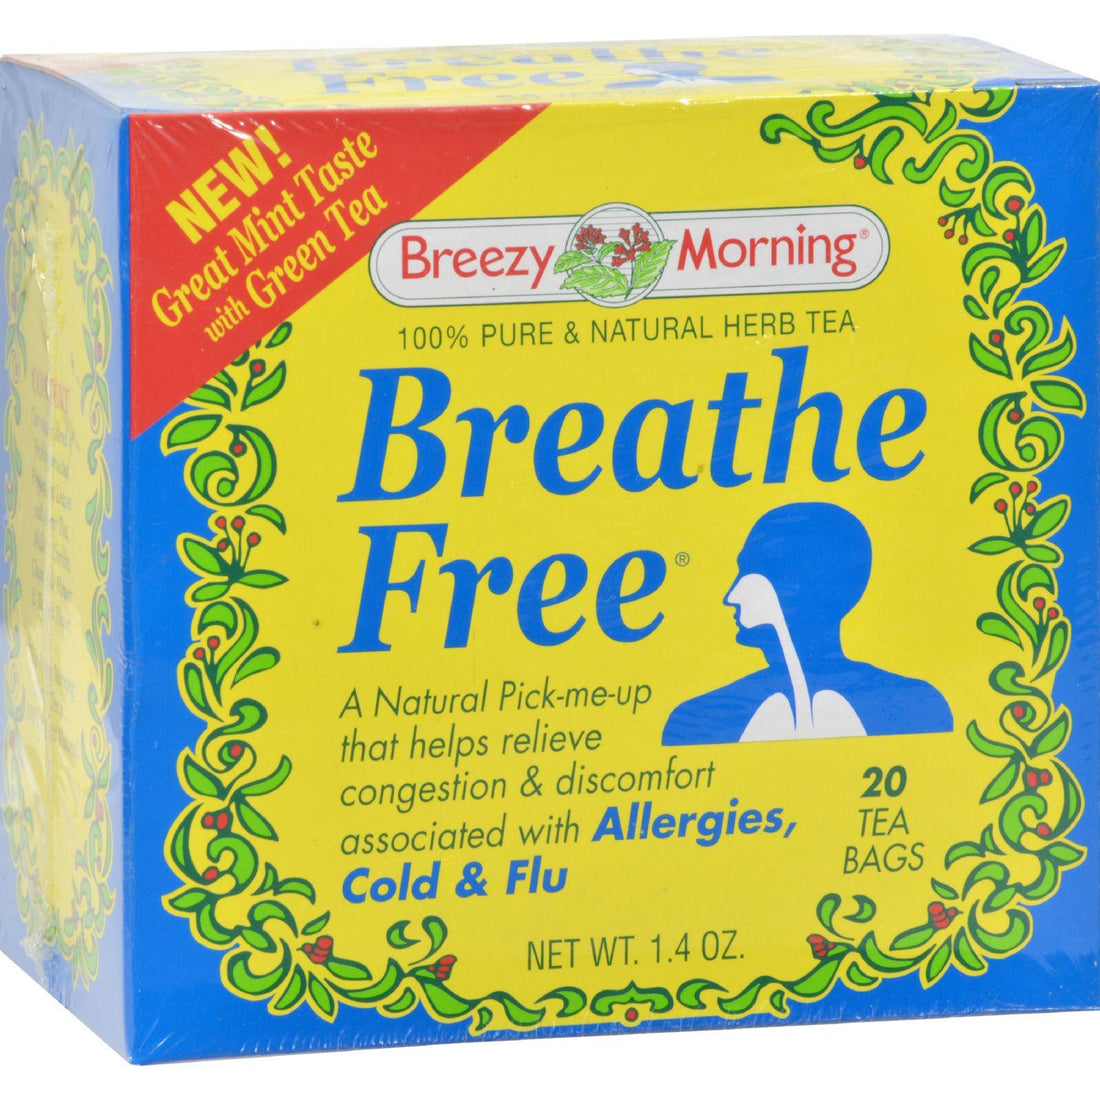 Mother Mantis: Breezy Morning Teas Breathe Free 100% Pure And Natural Herb Tea - 20 Bags Breezy Morning Teas